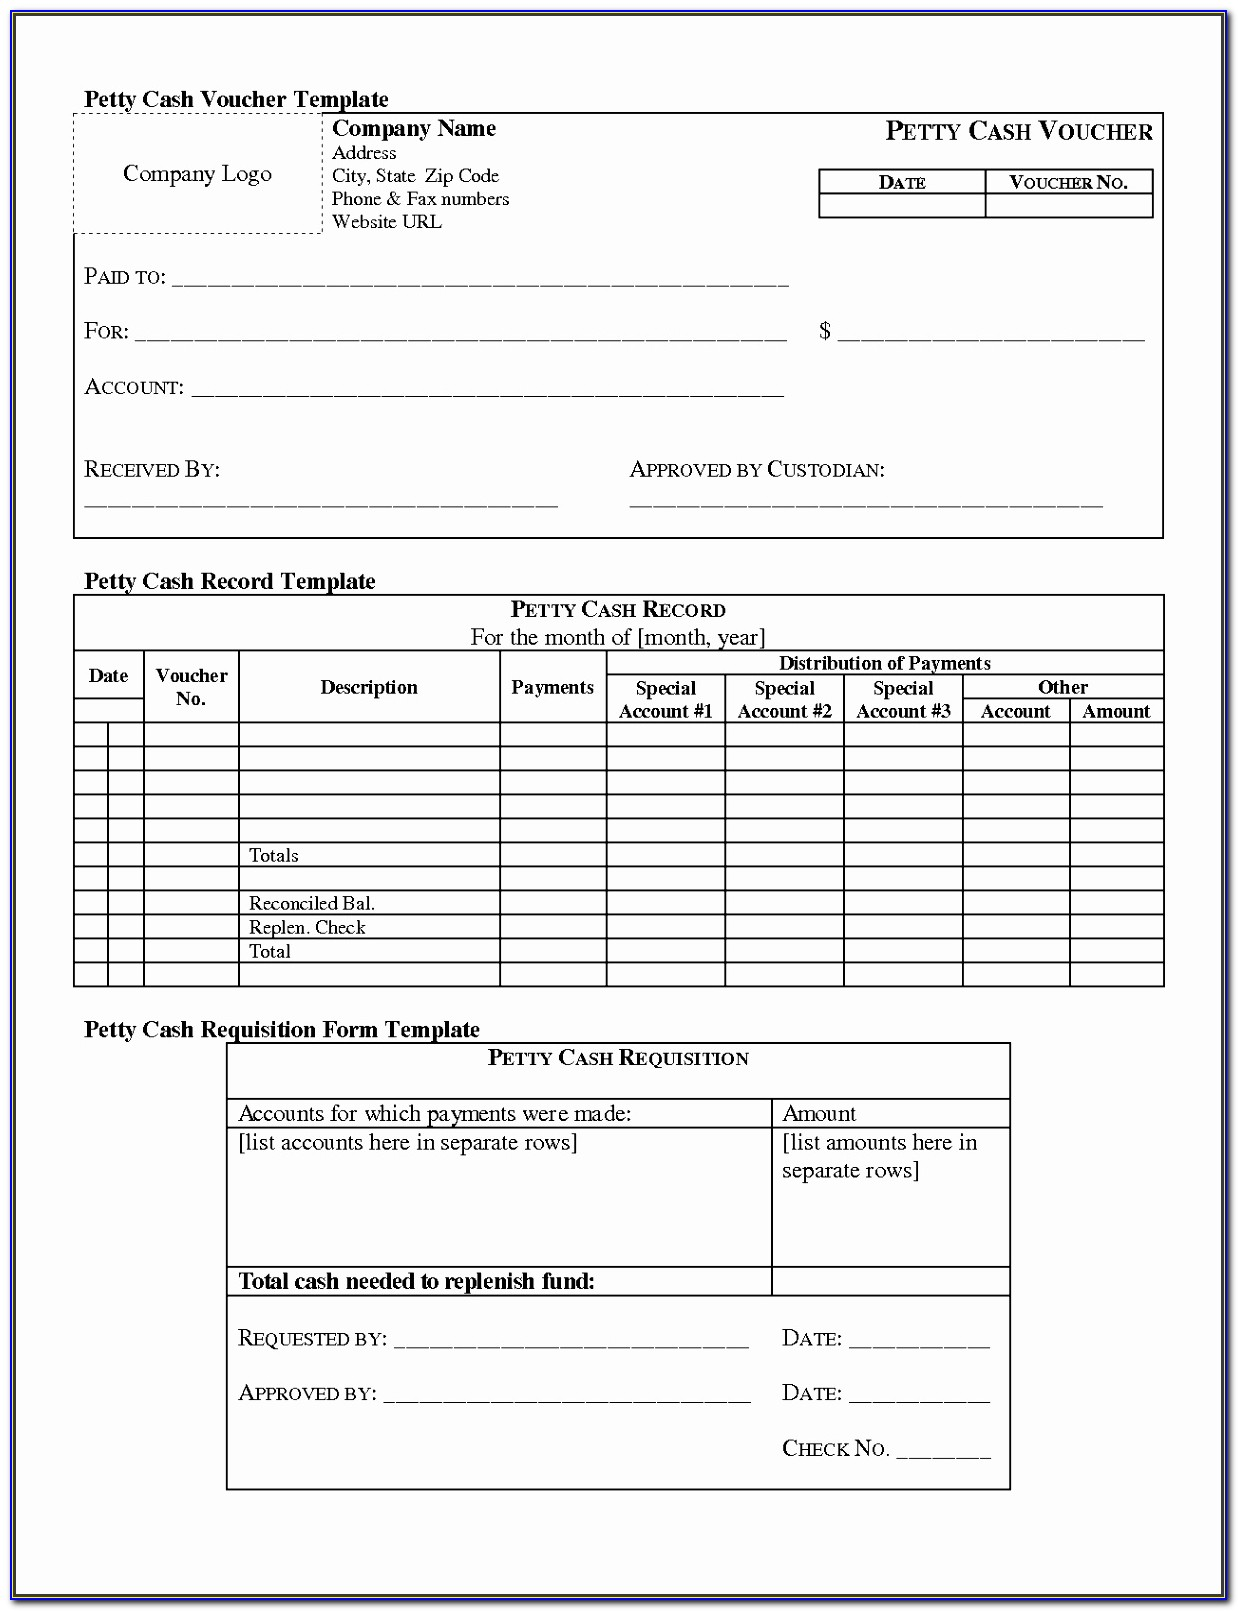 Free Petty Cash Reconciliation Form Template